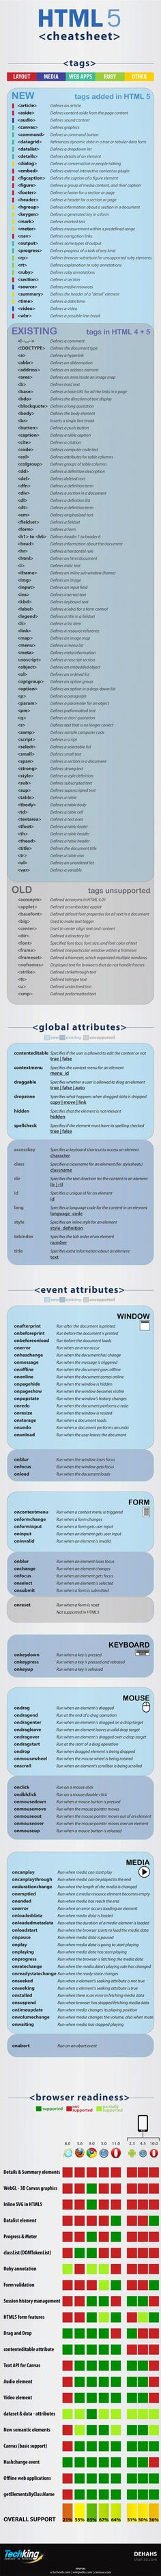 Cheat sheet Html